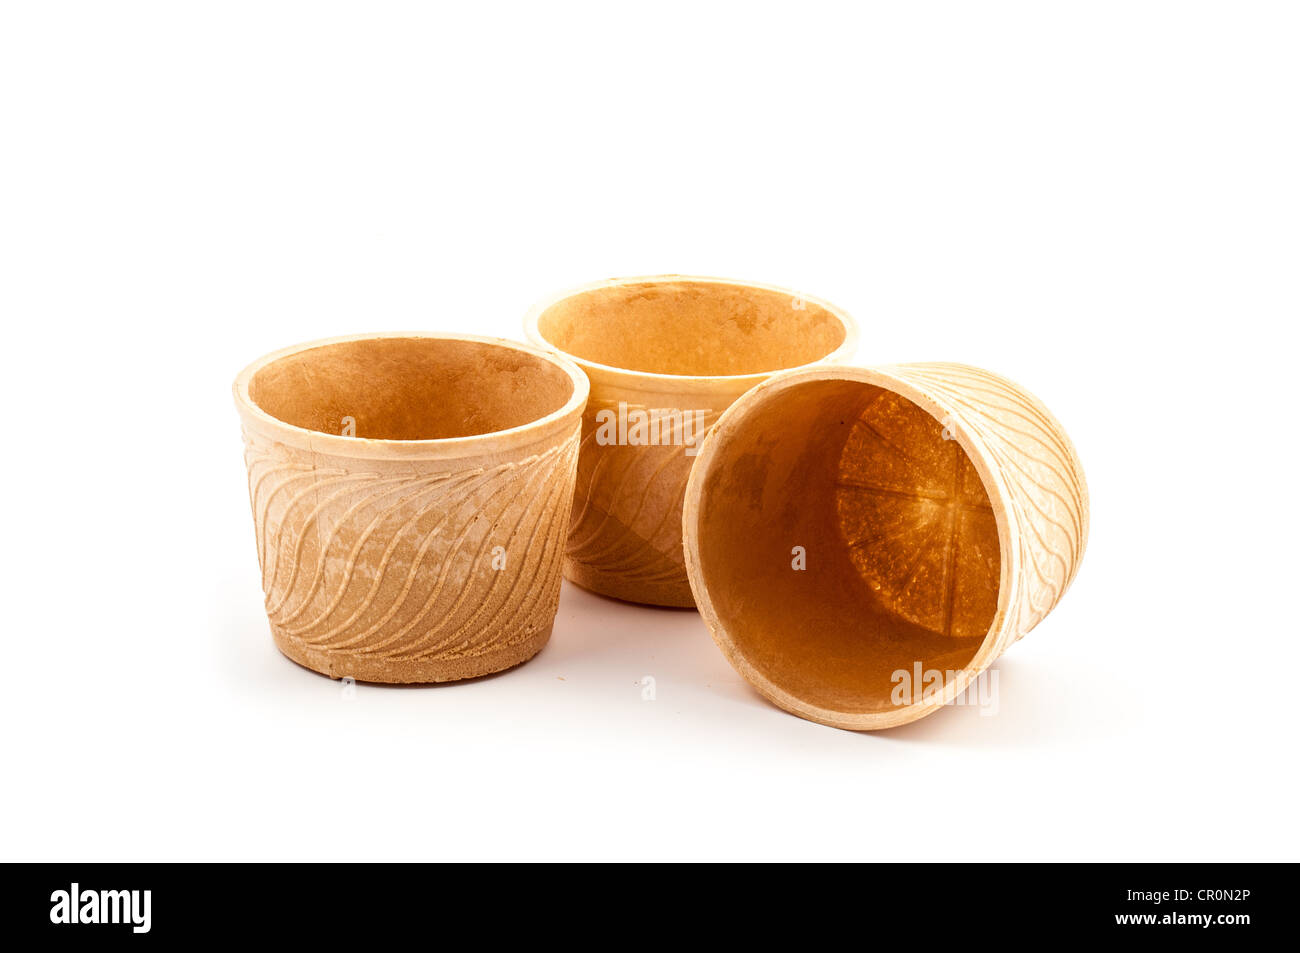 Rounded empty wafer cup isolated on white background - Stock Image